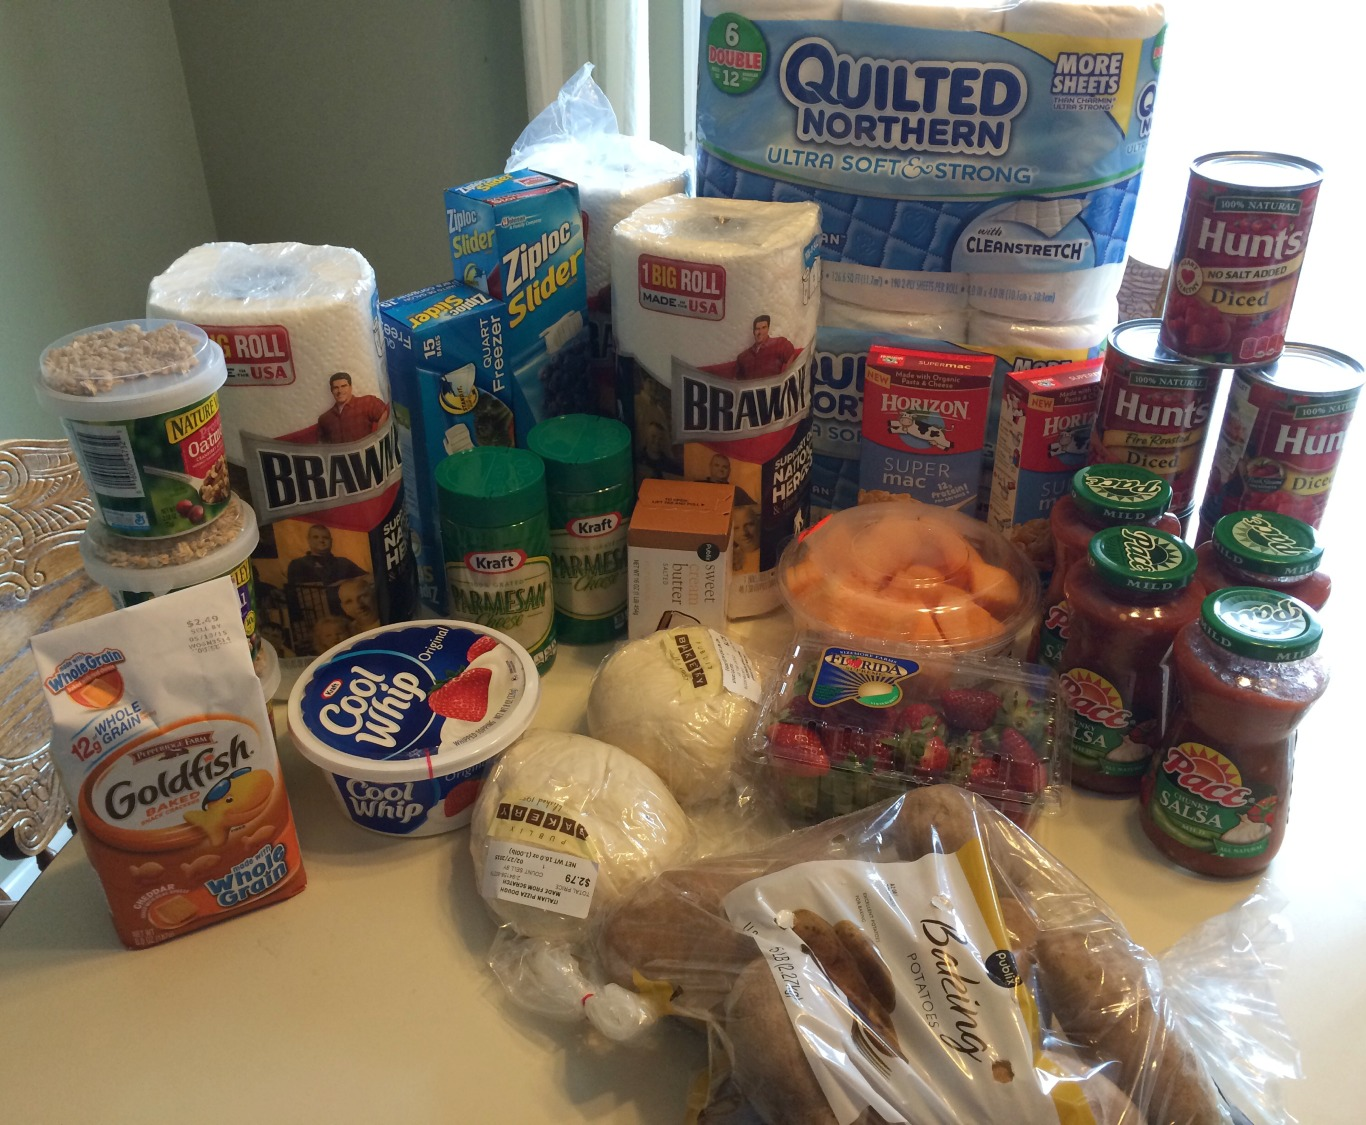 Shannon S Publix Trip Spent 29 For 81 In Groceries